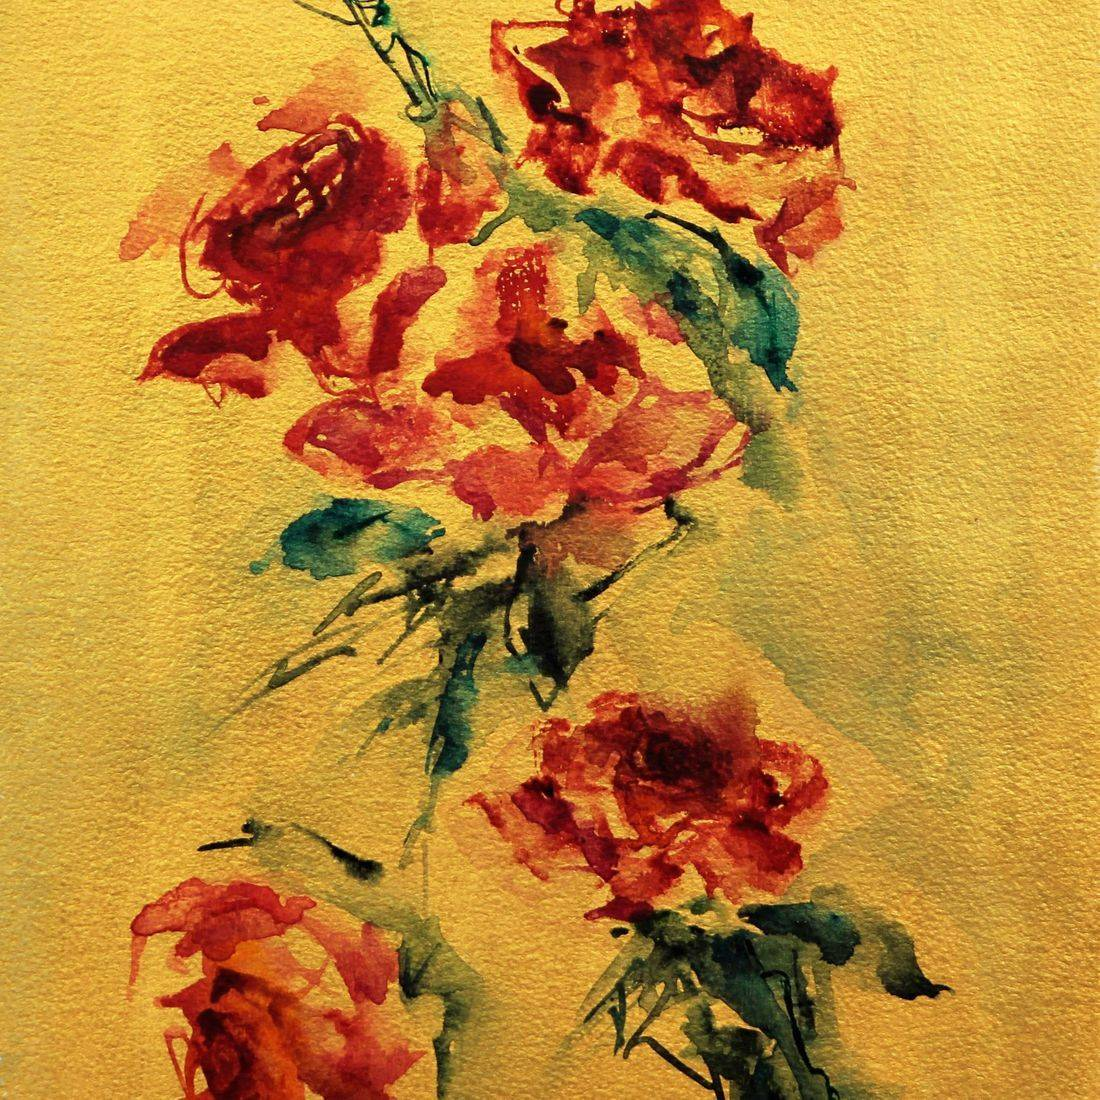 R Putbrese watercolor painting of red roses